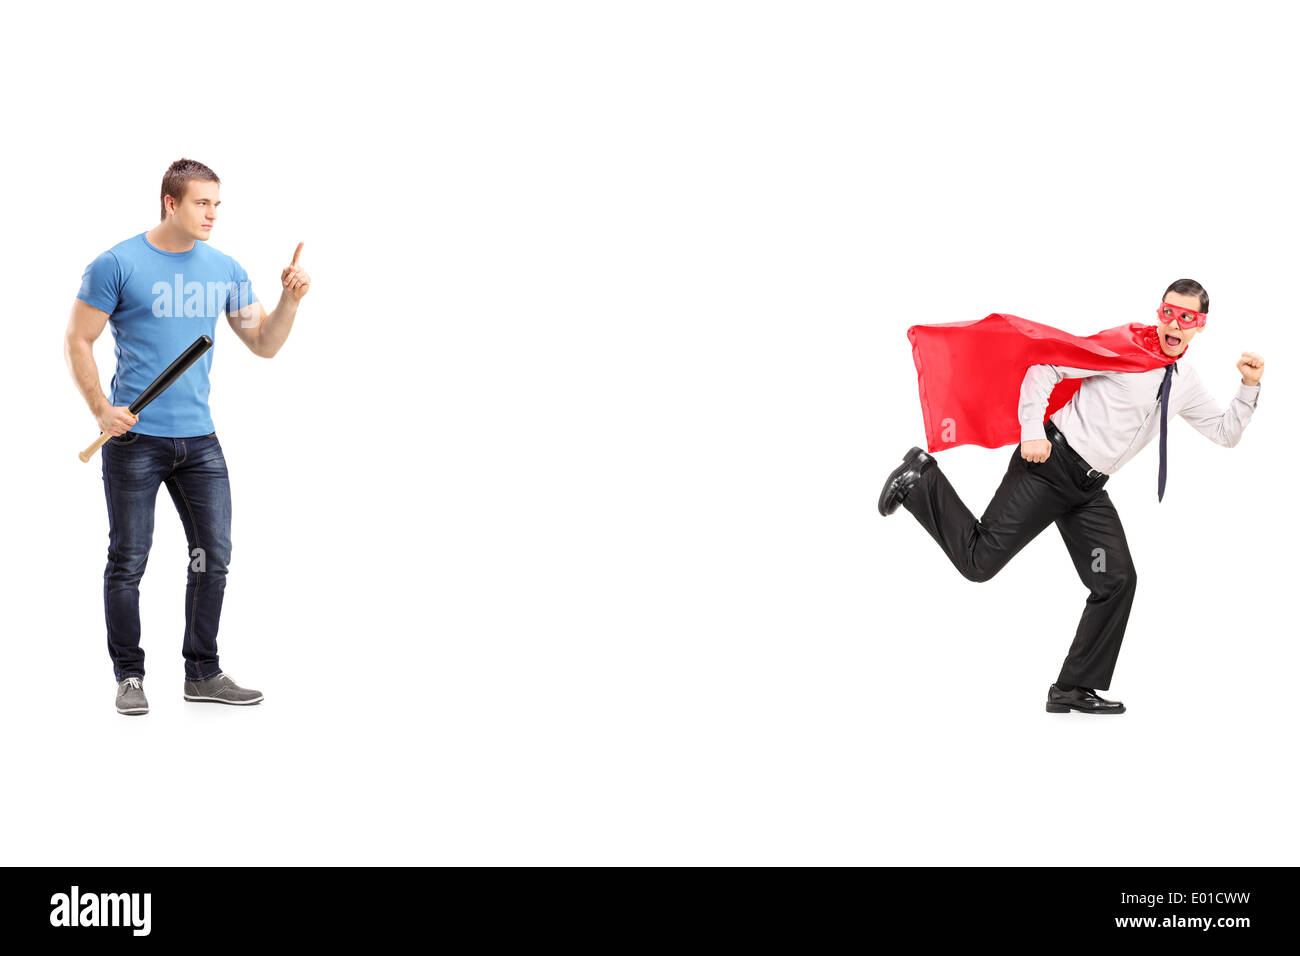 Scared superhero running away from a man with bat Stock Photo